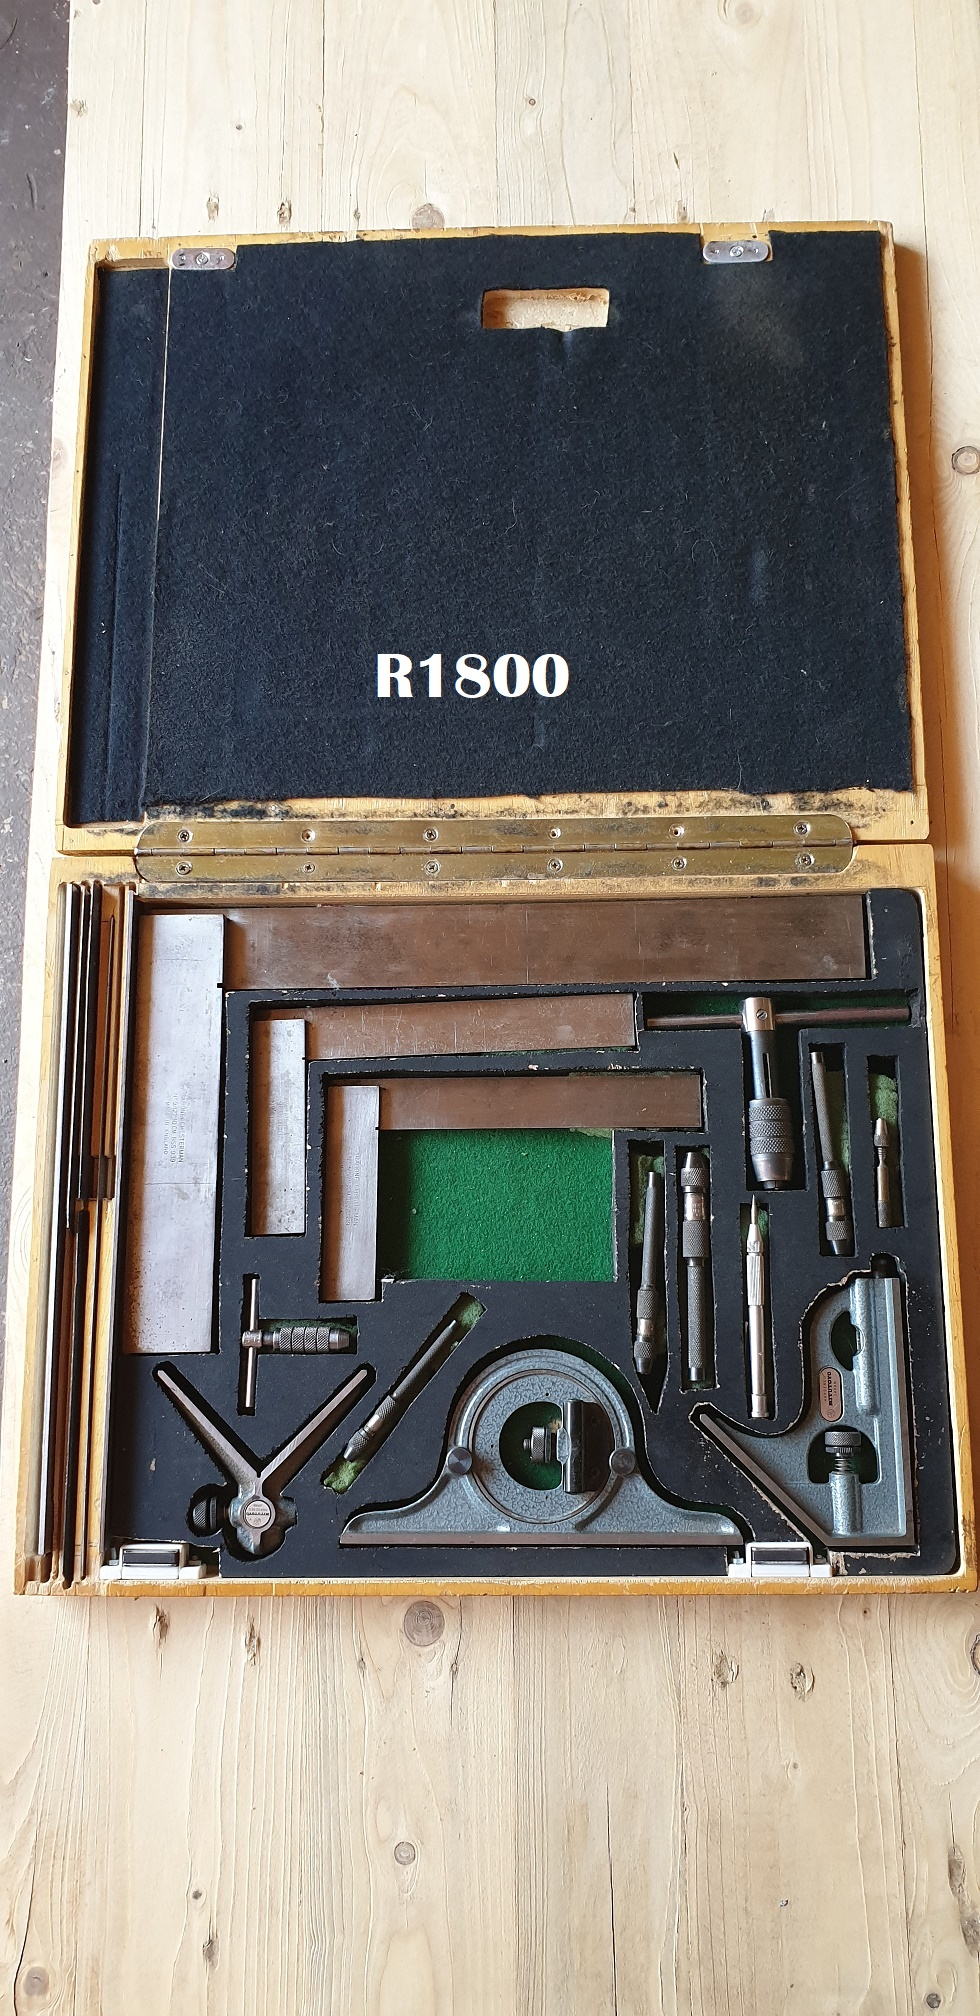 Set of 2 Rabone Chesterman Squares 1 x Moore and Wright No 400 Square Eclipse No 123 Pin Vice Set and a Mitutoyo Combination Square Set